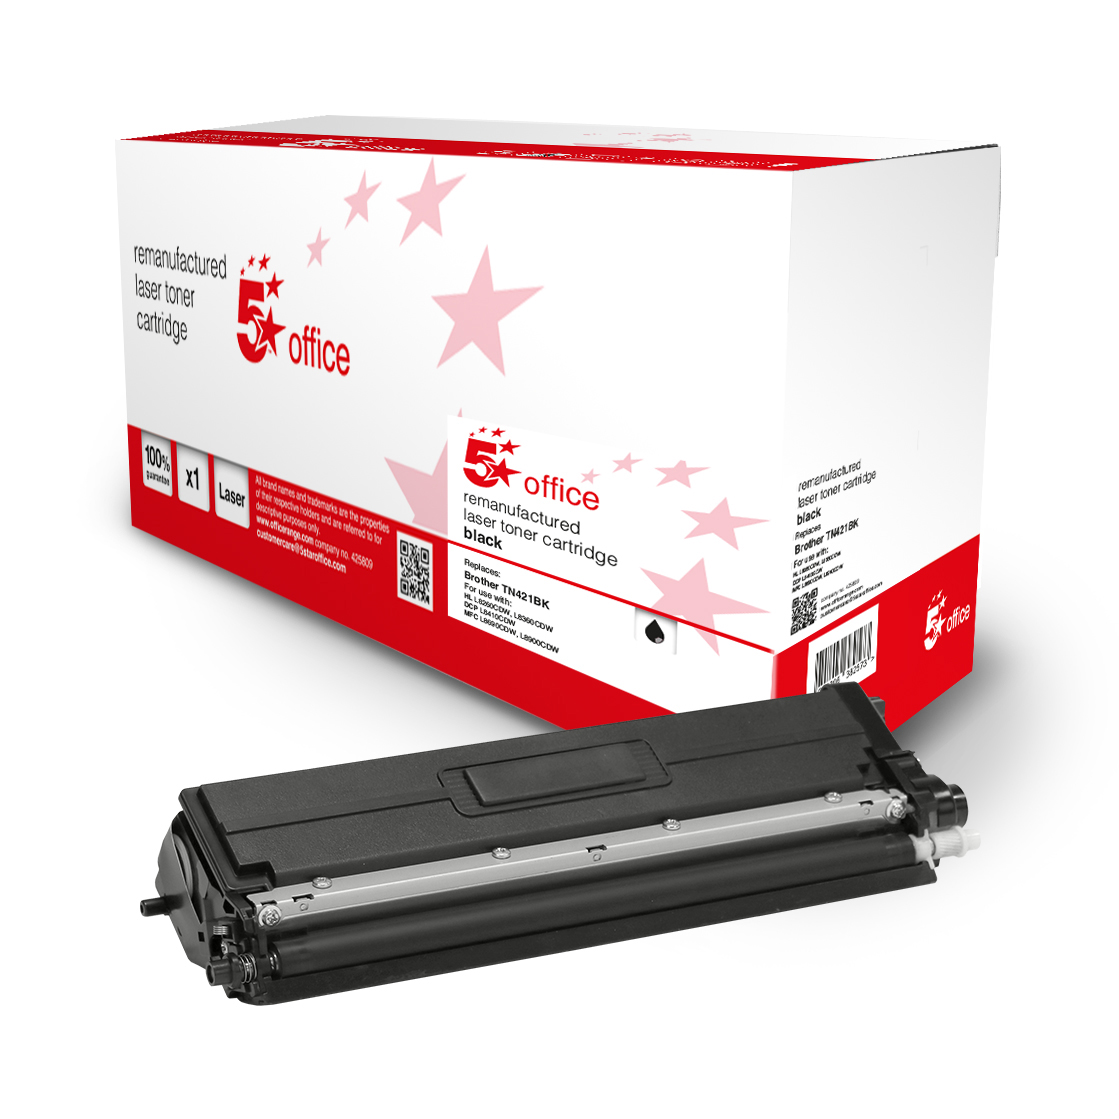 5 Star Office Remanufactured Toner Cartridge Page Life Black 3000pp [Brother TN421BK Alternative]